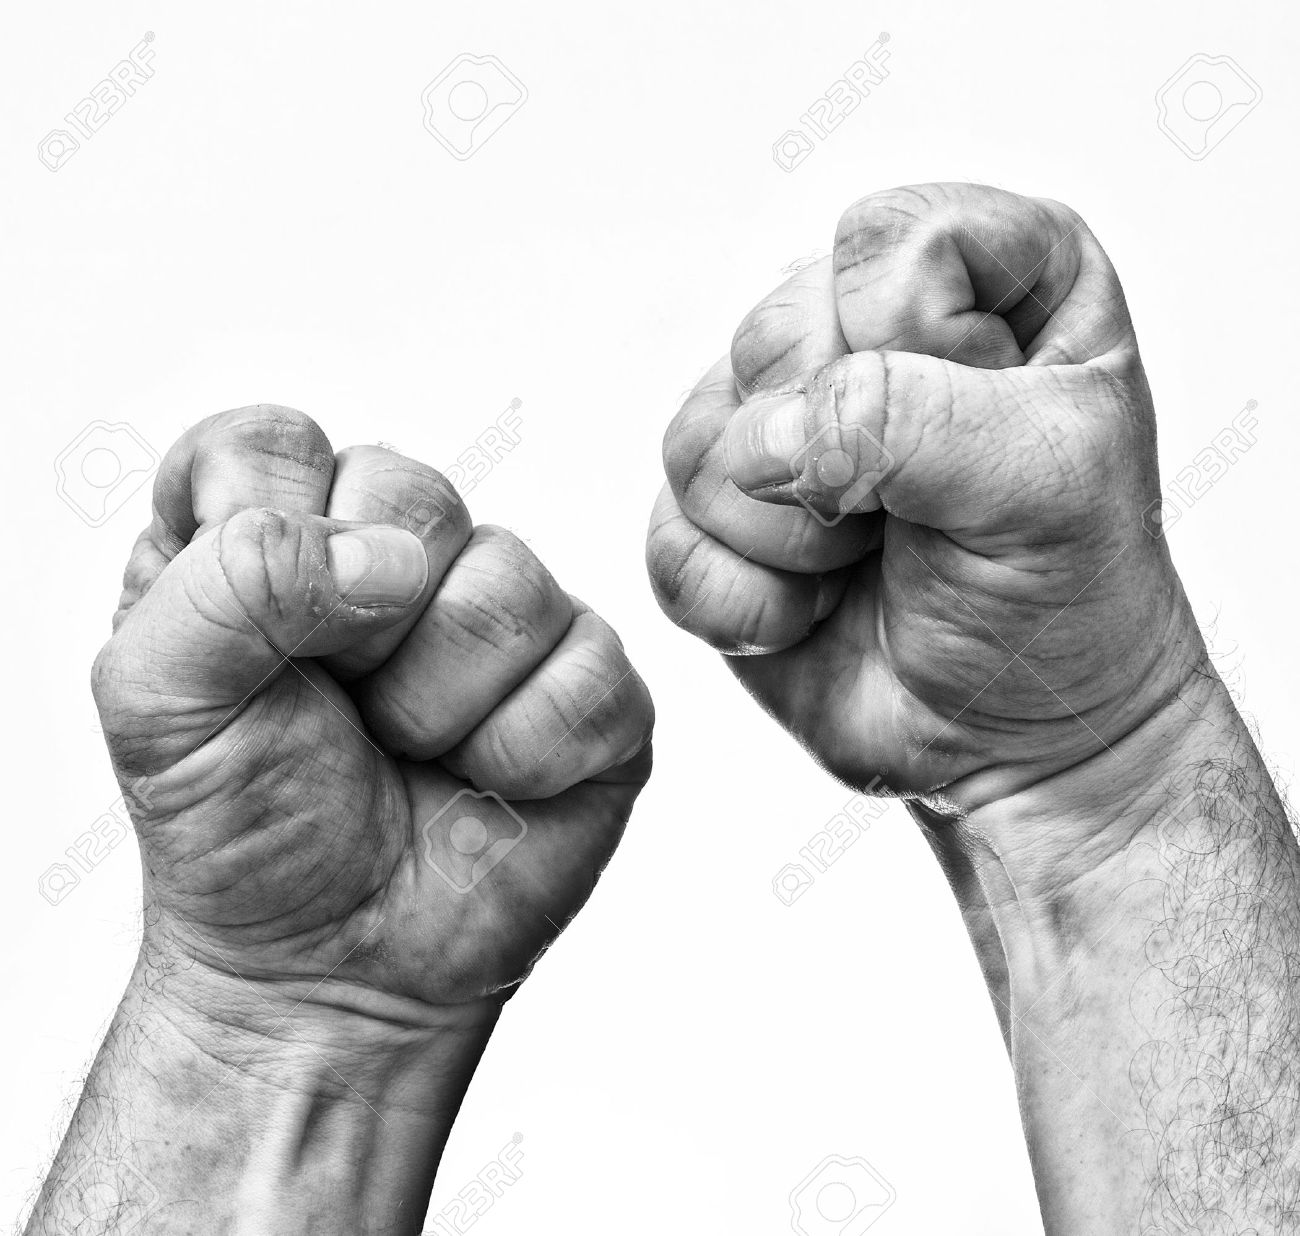 Two clenched fists showing stress and rage. Stock Photo - 12420770